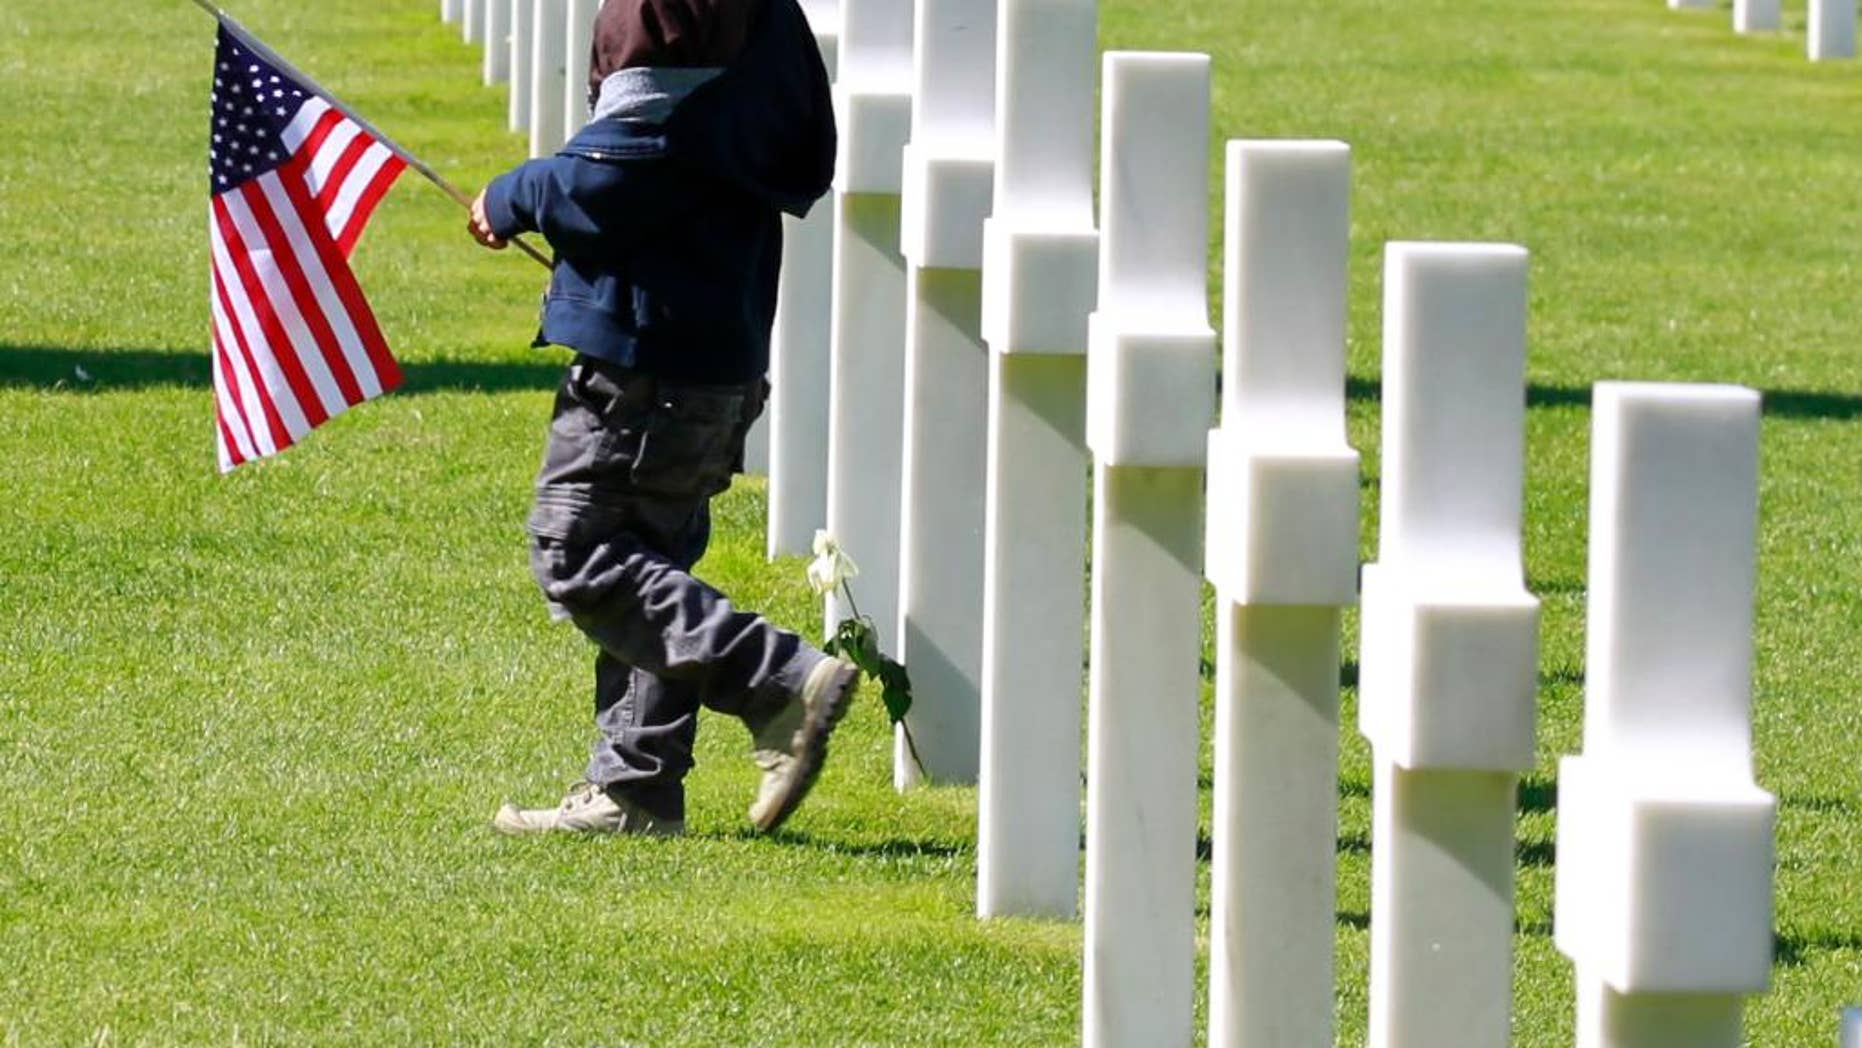 A young visitor carrying the U.S. flag walks among graves at the Colleville American military cemetery, in Colleville sur Mer, western France, Saturday June 6, 2015,  on  the 71th anniversary of the D-Day landing.  D-Day marked the start of a Europe invasion, as many thousands of Allied troops began landing on the beaches of Normandy in northern France in 1944 at the start of a major offensive against the Nazi German forces, an offensive which cost the lives of many thousands. (AP Photo/Remy de la Mauviniere)